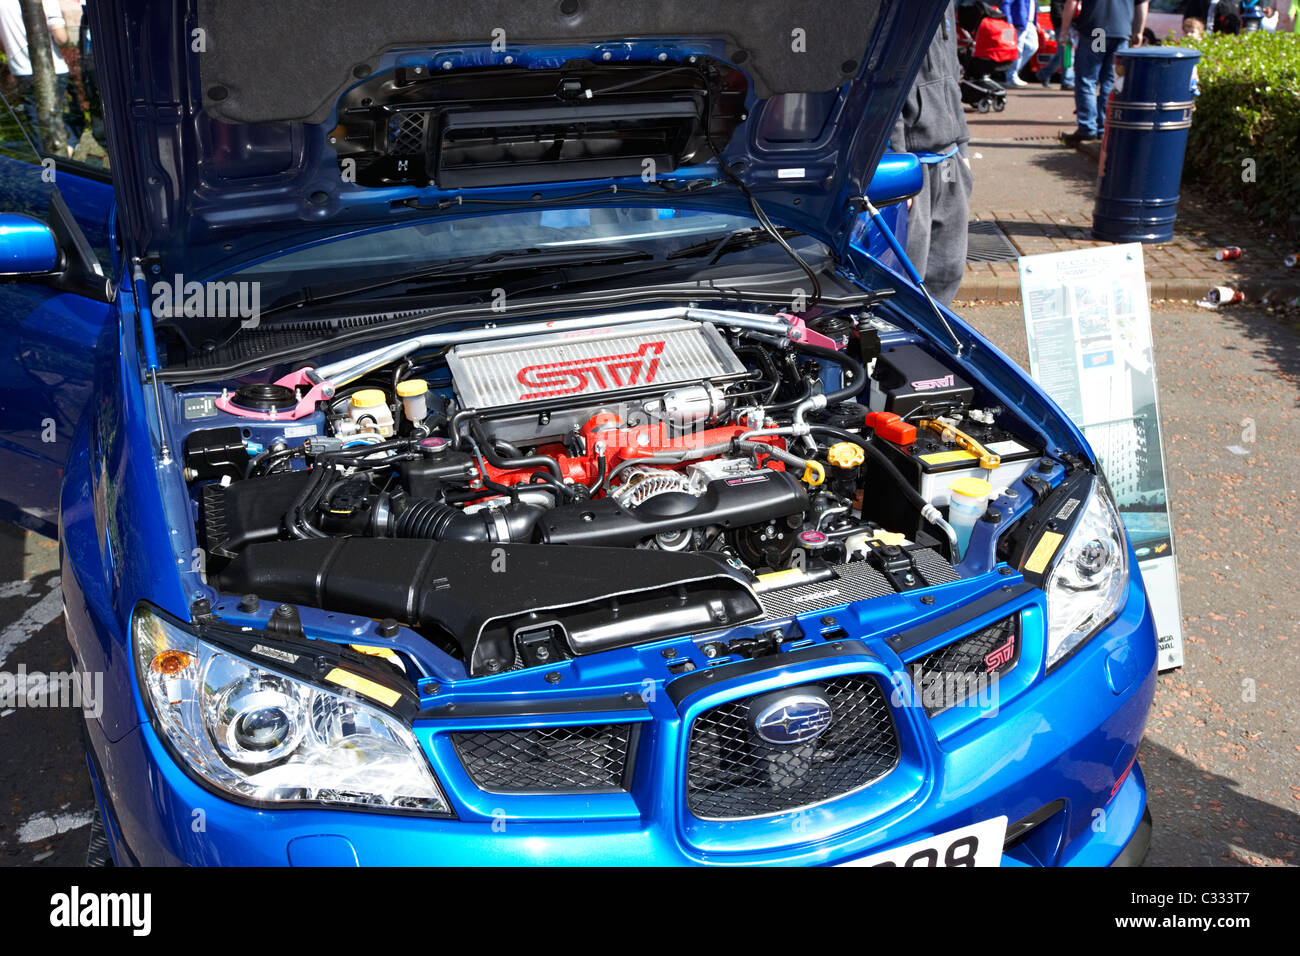 clean spotless engine of a subaru impreza wrx sti show car at a modified car show in the uk Stock Photo